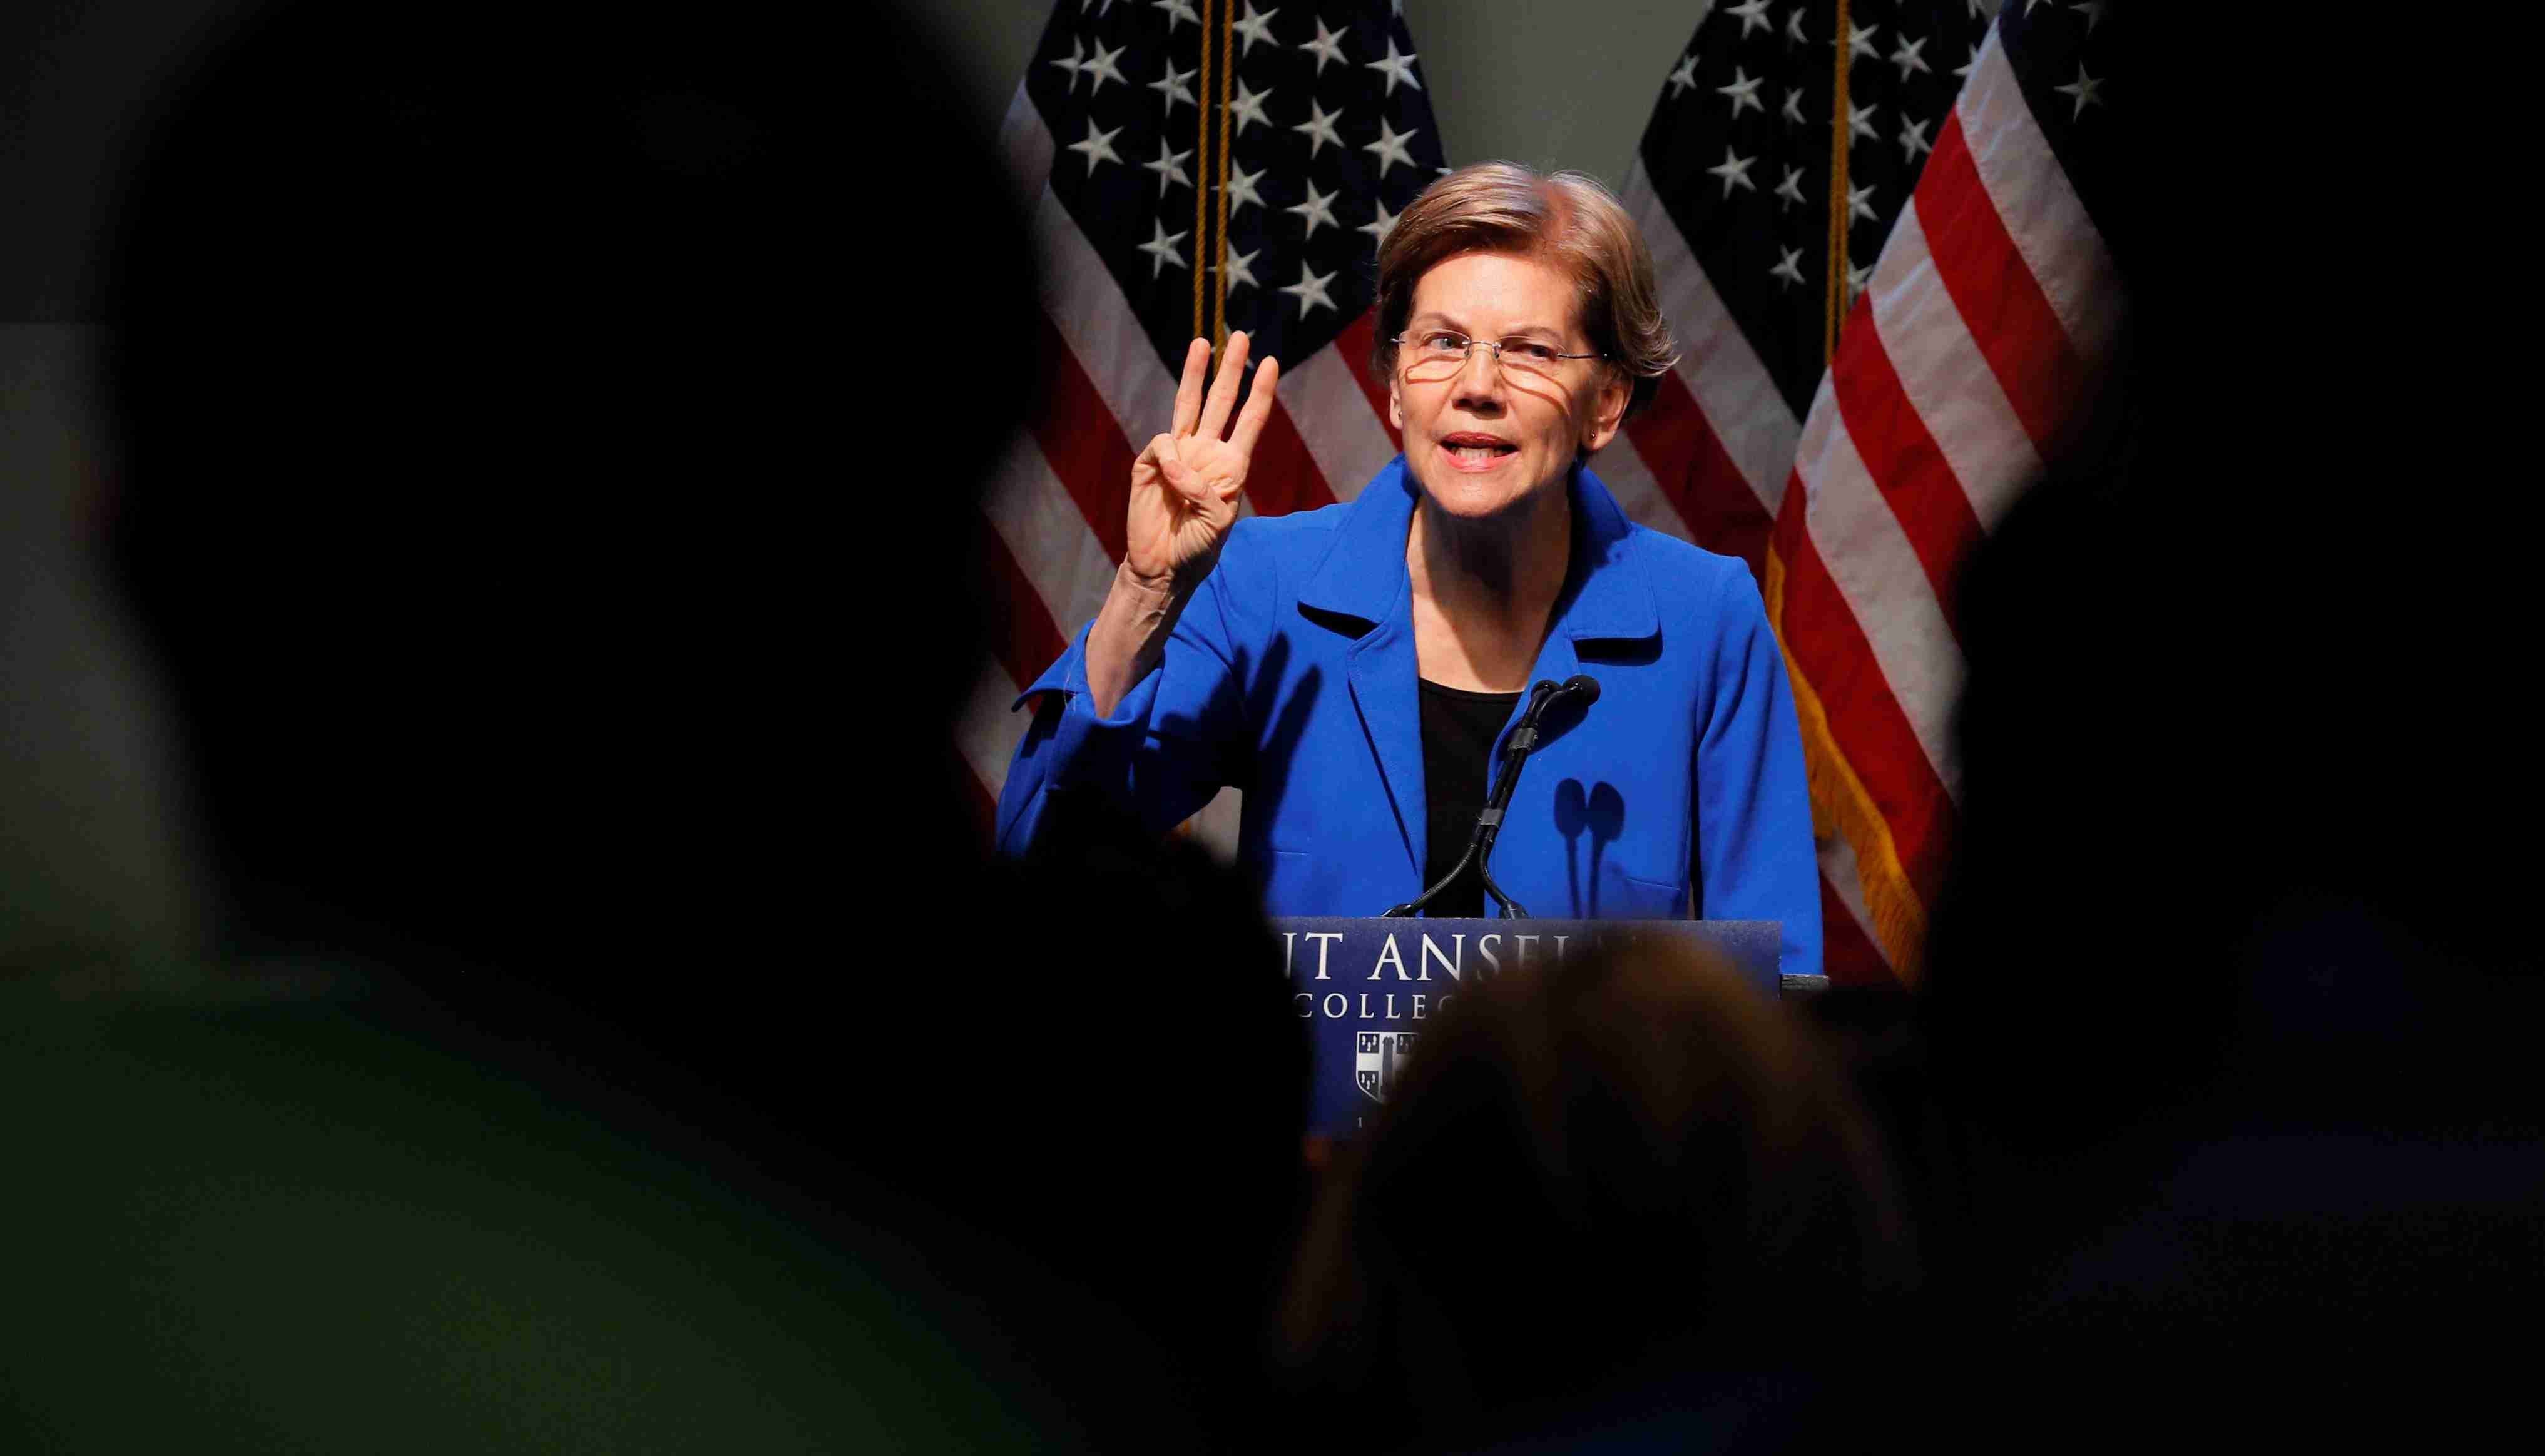 Democratic 2020 U.S. presidential candidate and U.S. Senator Elizabeth Warren (D-MA) delivers a campaign economic speech at Saint Anselm College's Institue of Politics in Manchester, New Hampshire, U.S., December 12, 2019.   REUTERS/Brian Snyder - RC2TTD9M43SN